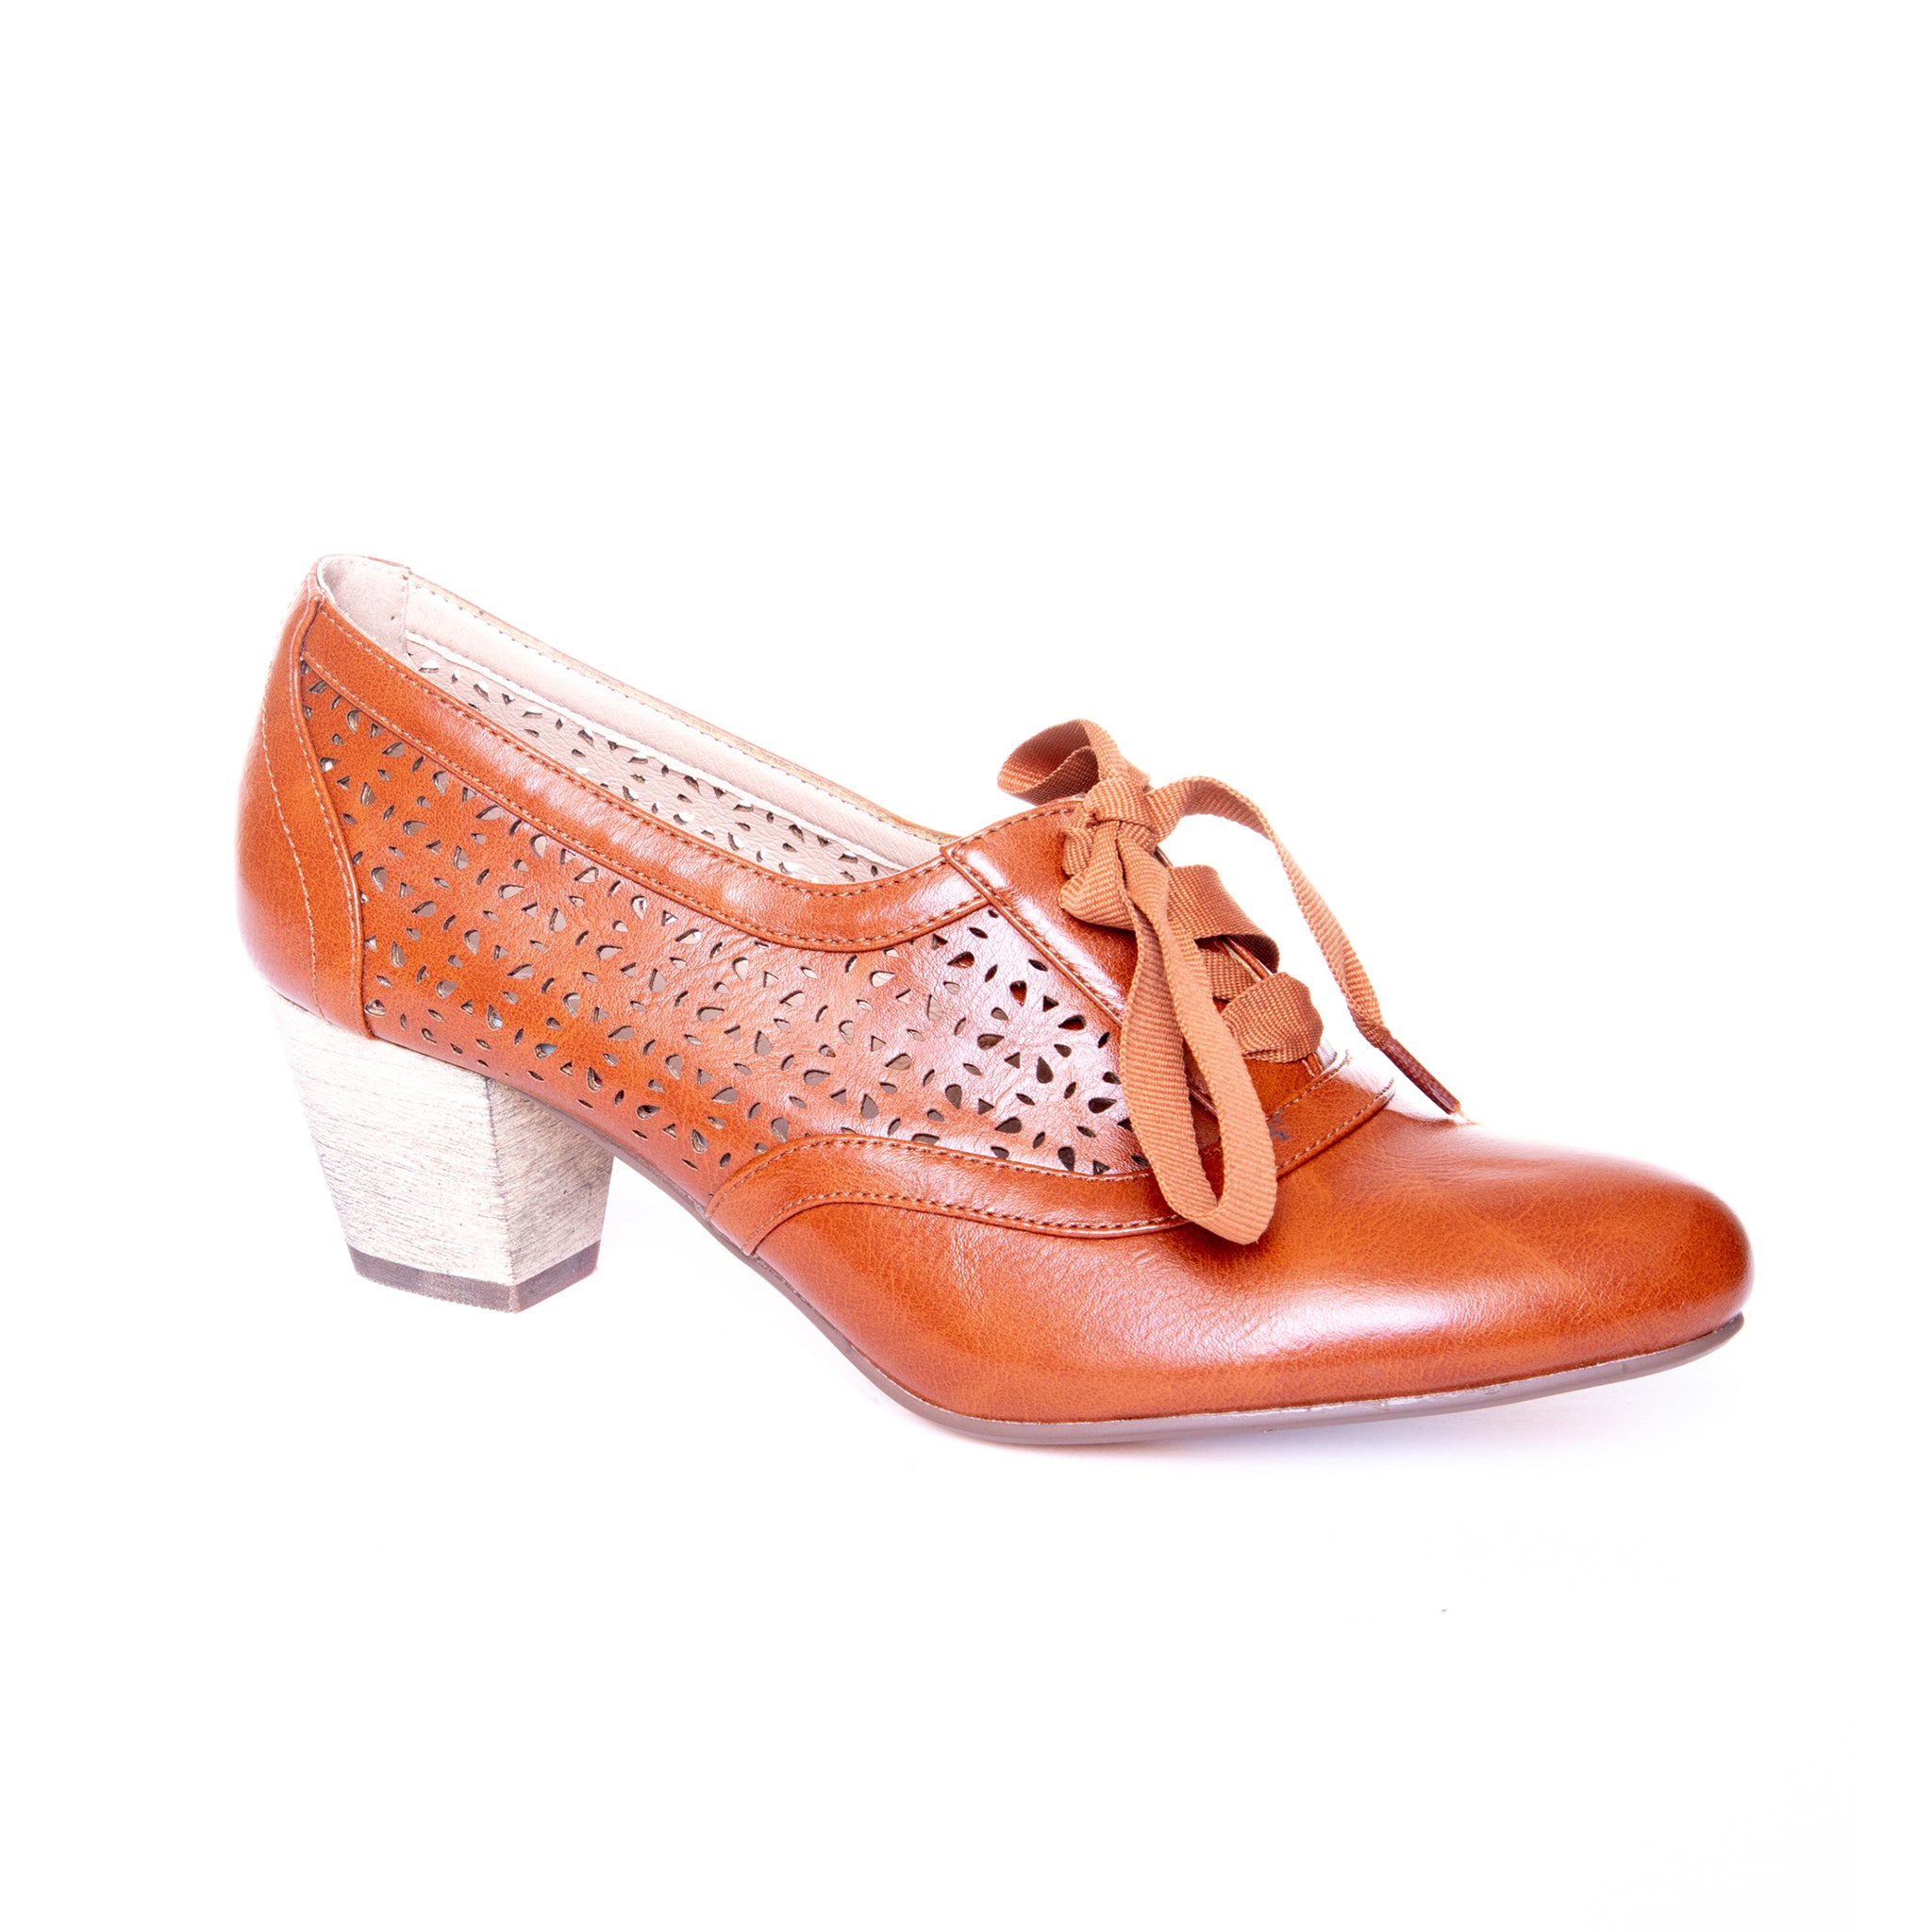 Selena by Dolce Nome | Lace Up Oxford Pumps in Tan (main view)